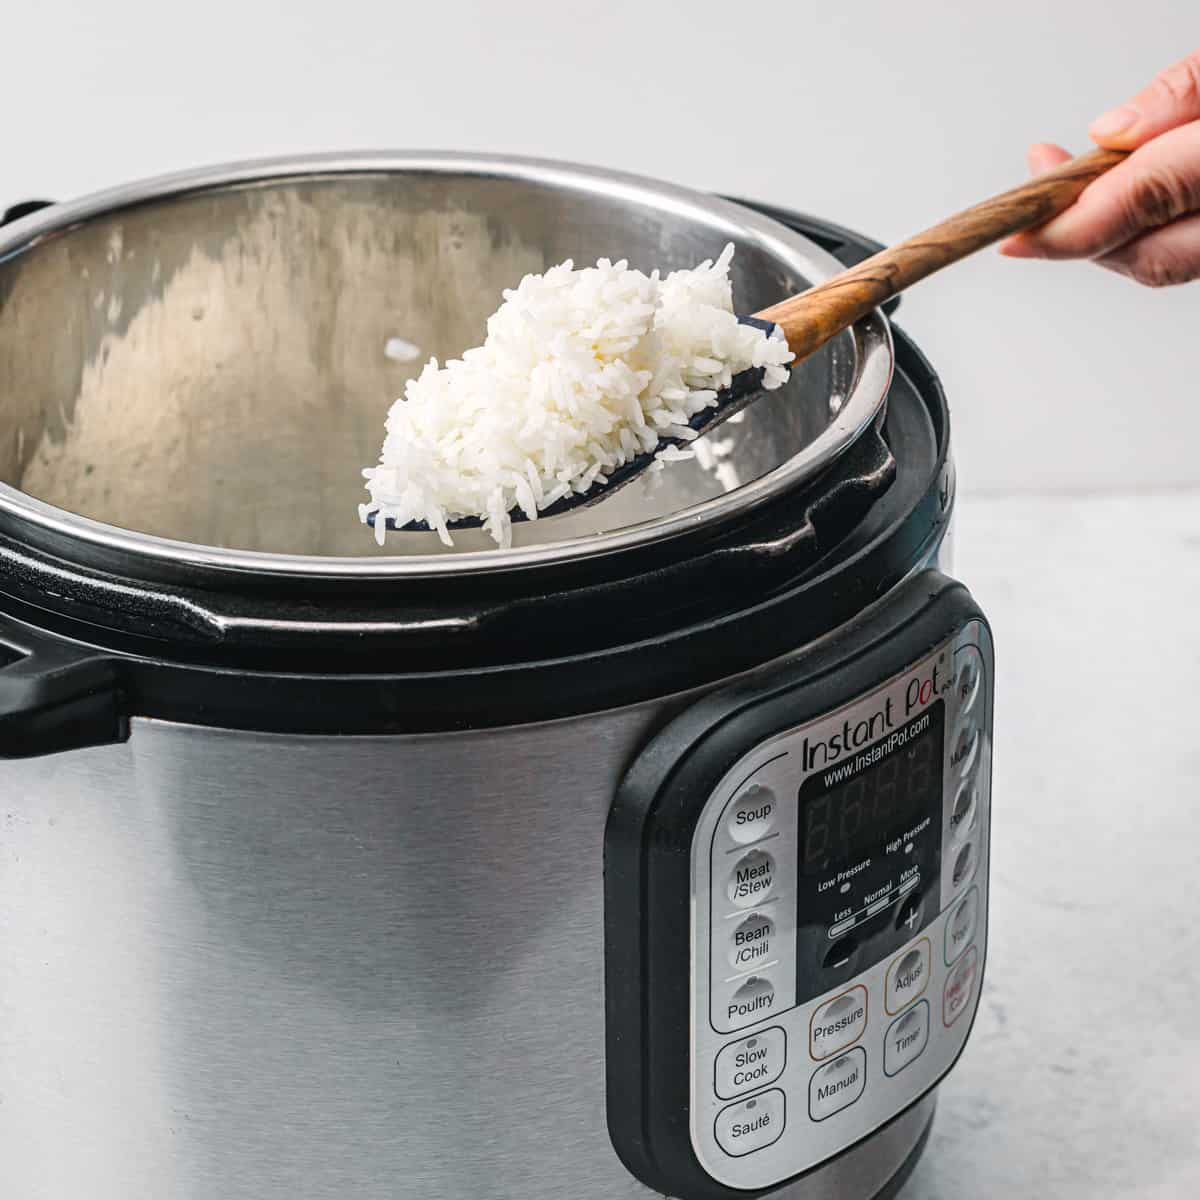 How to cook white rice in an instant pot